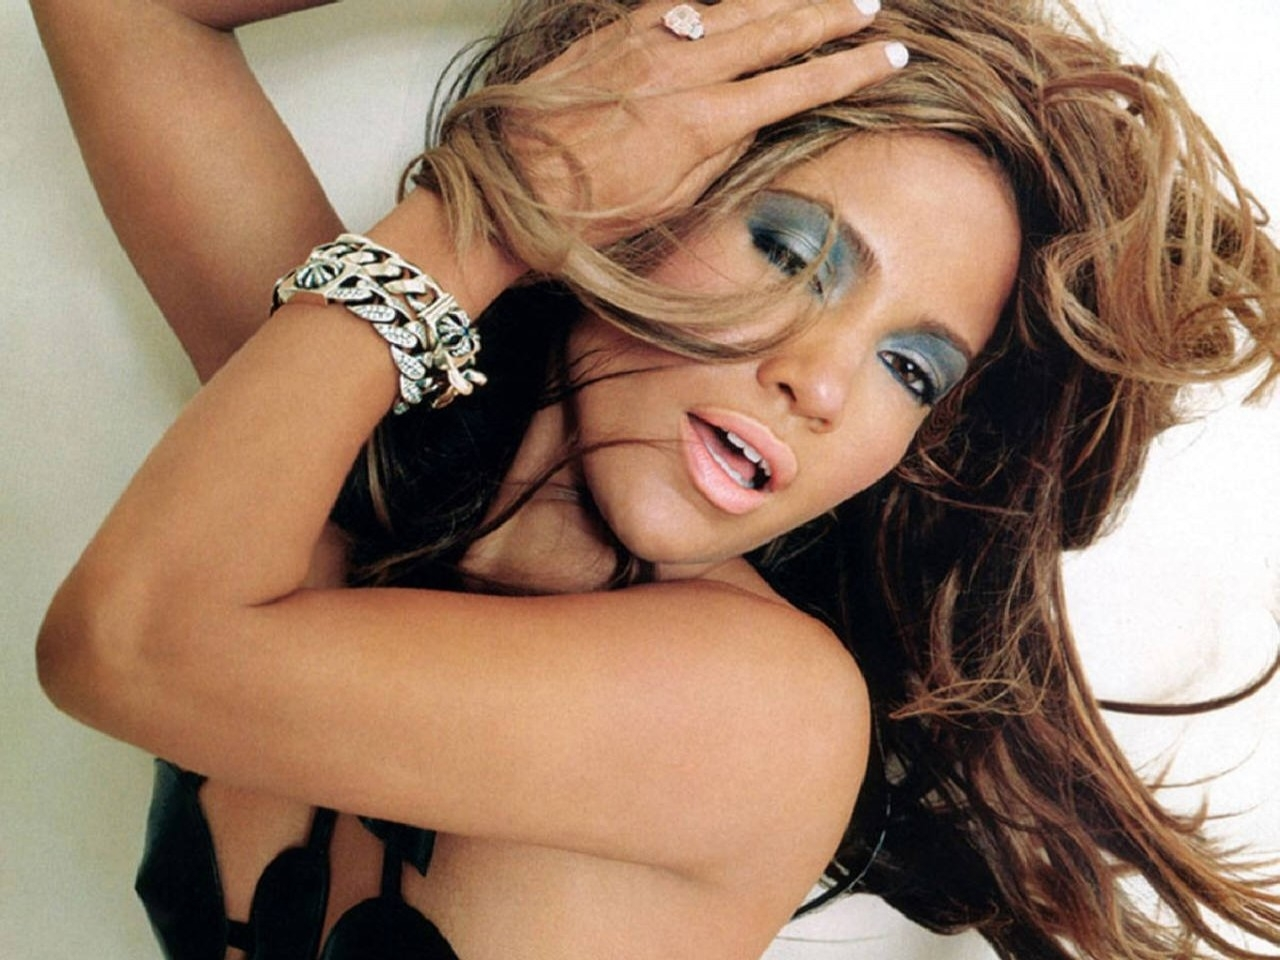 Wallpaper di Jennifer Lopez, stella del pop latino e attrice